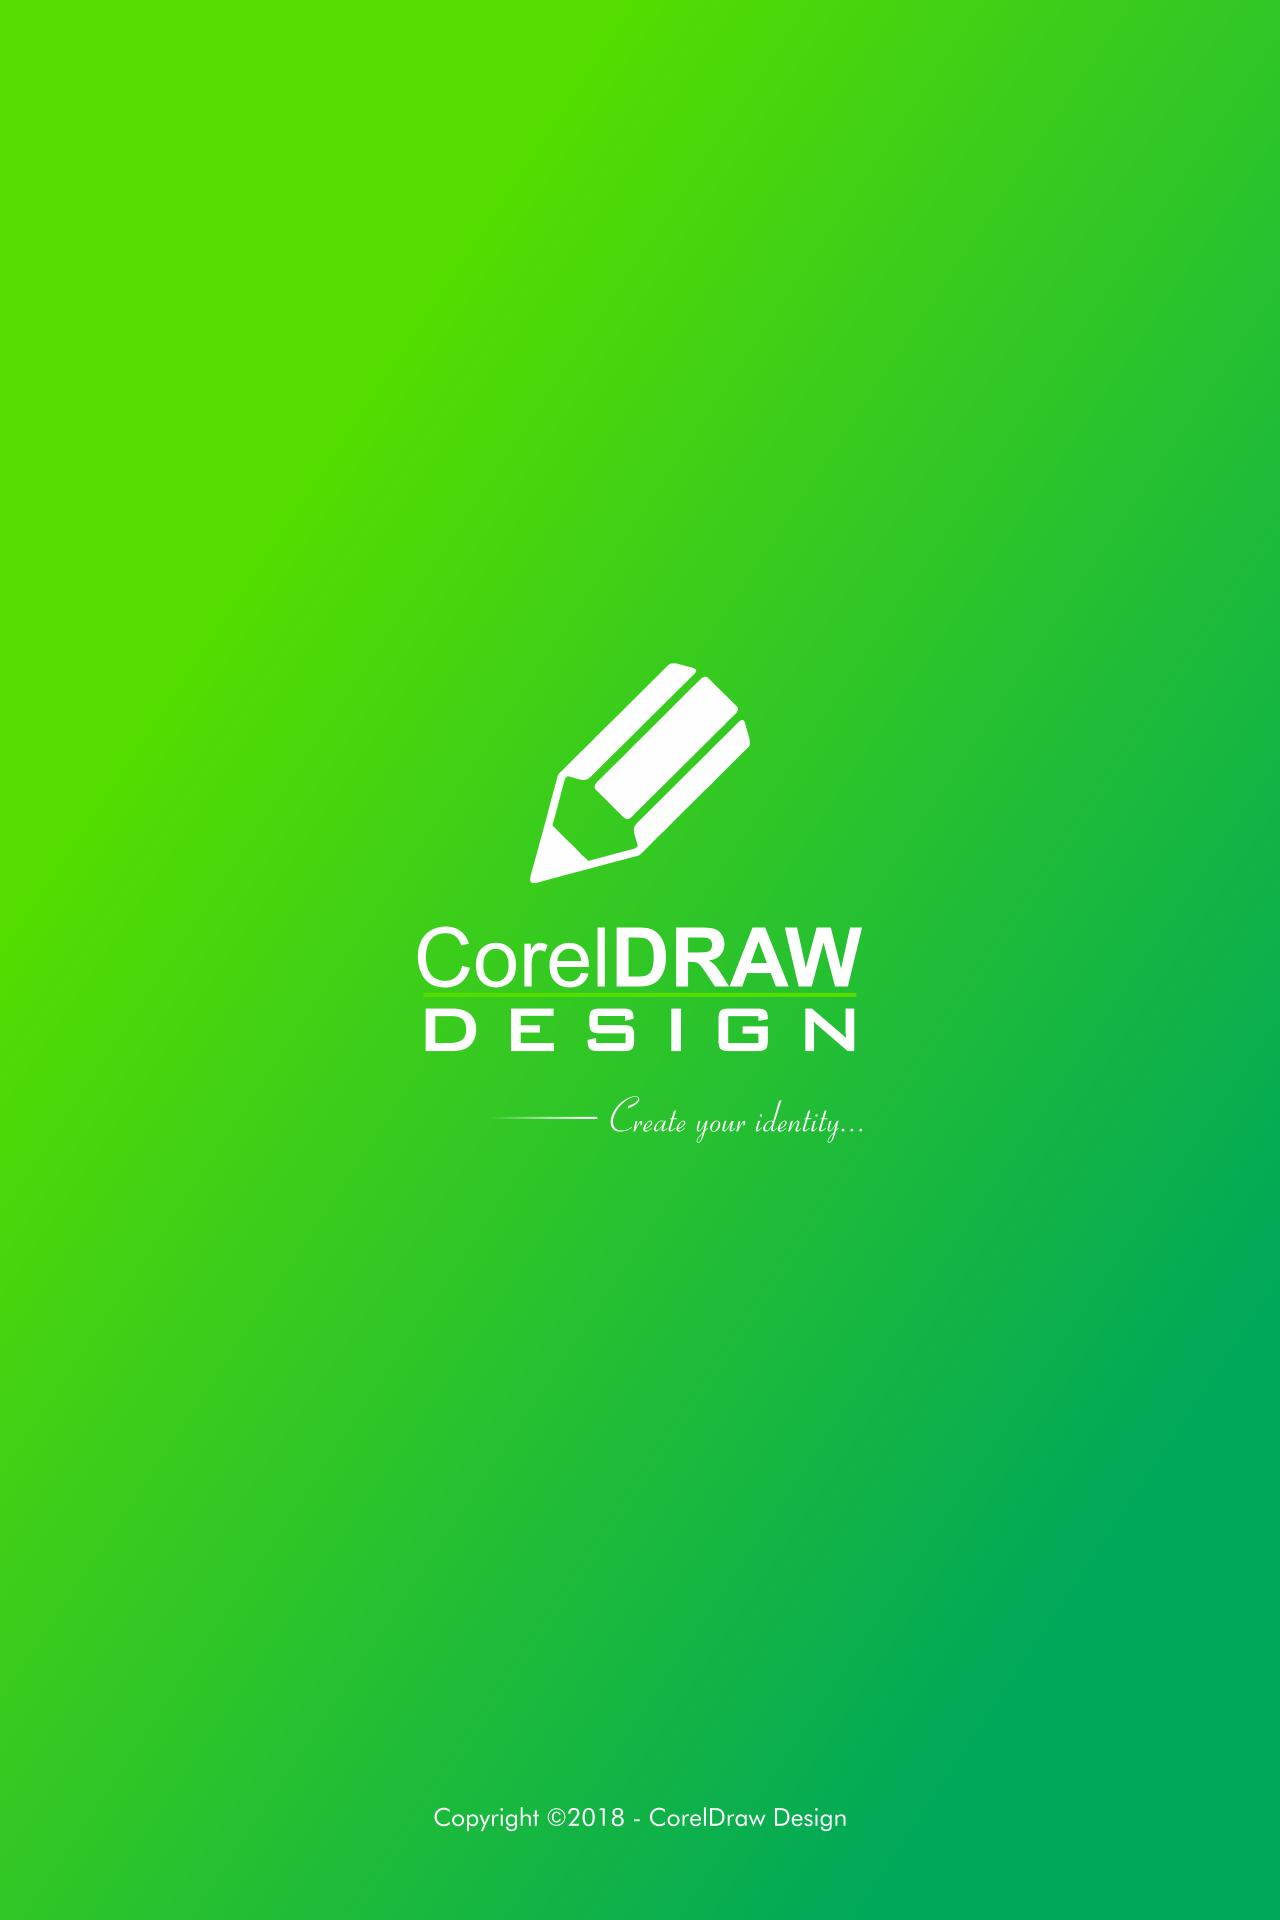 CorelDraw Design : Free CDR templates for Android - APK Download